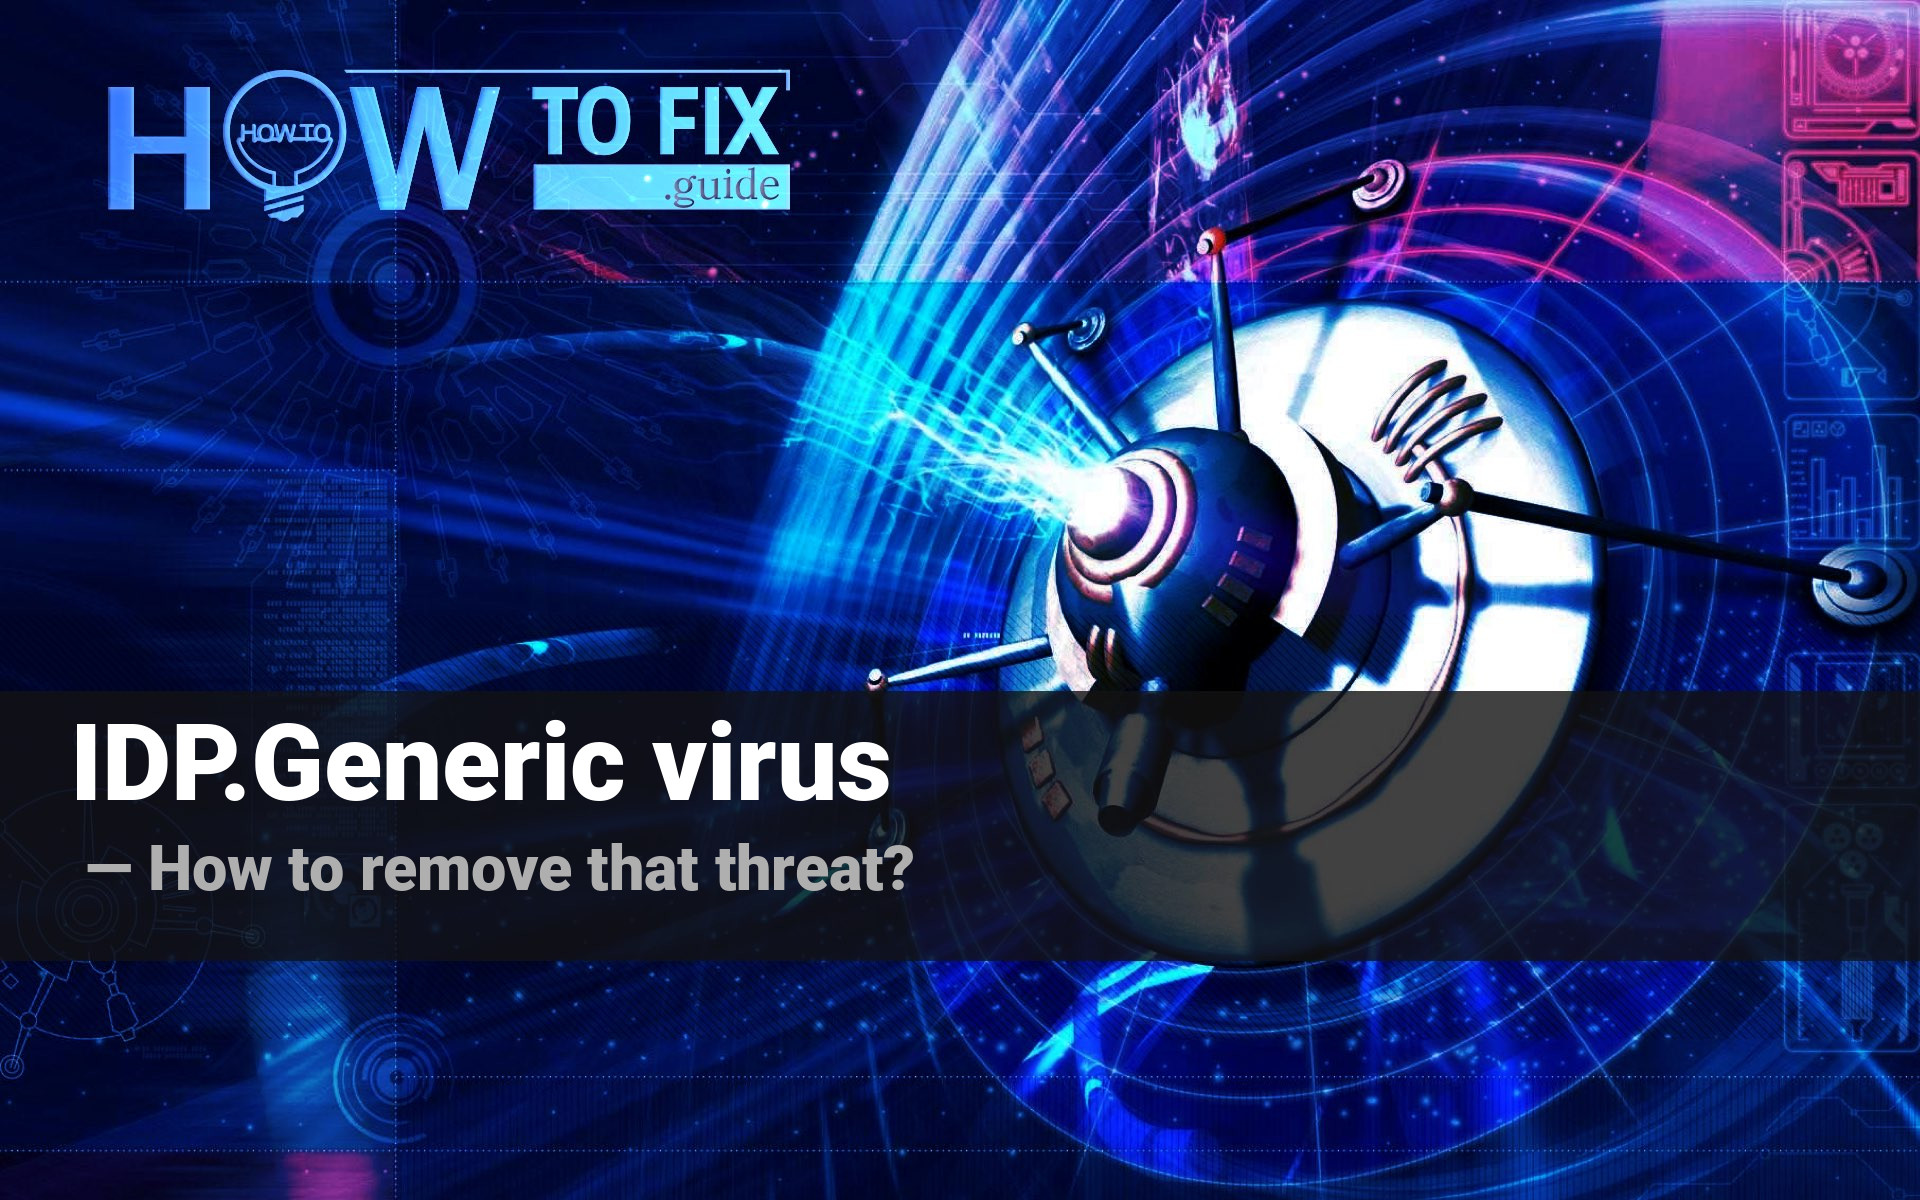 The IDP.Generic Virus: What It Is and How to Remove It?